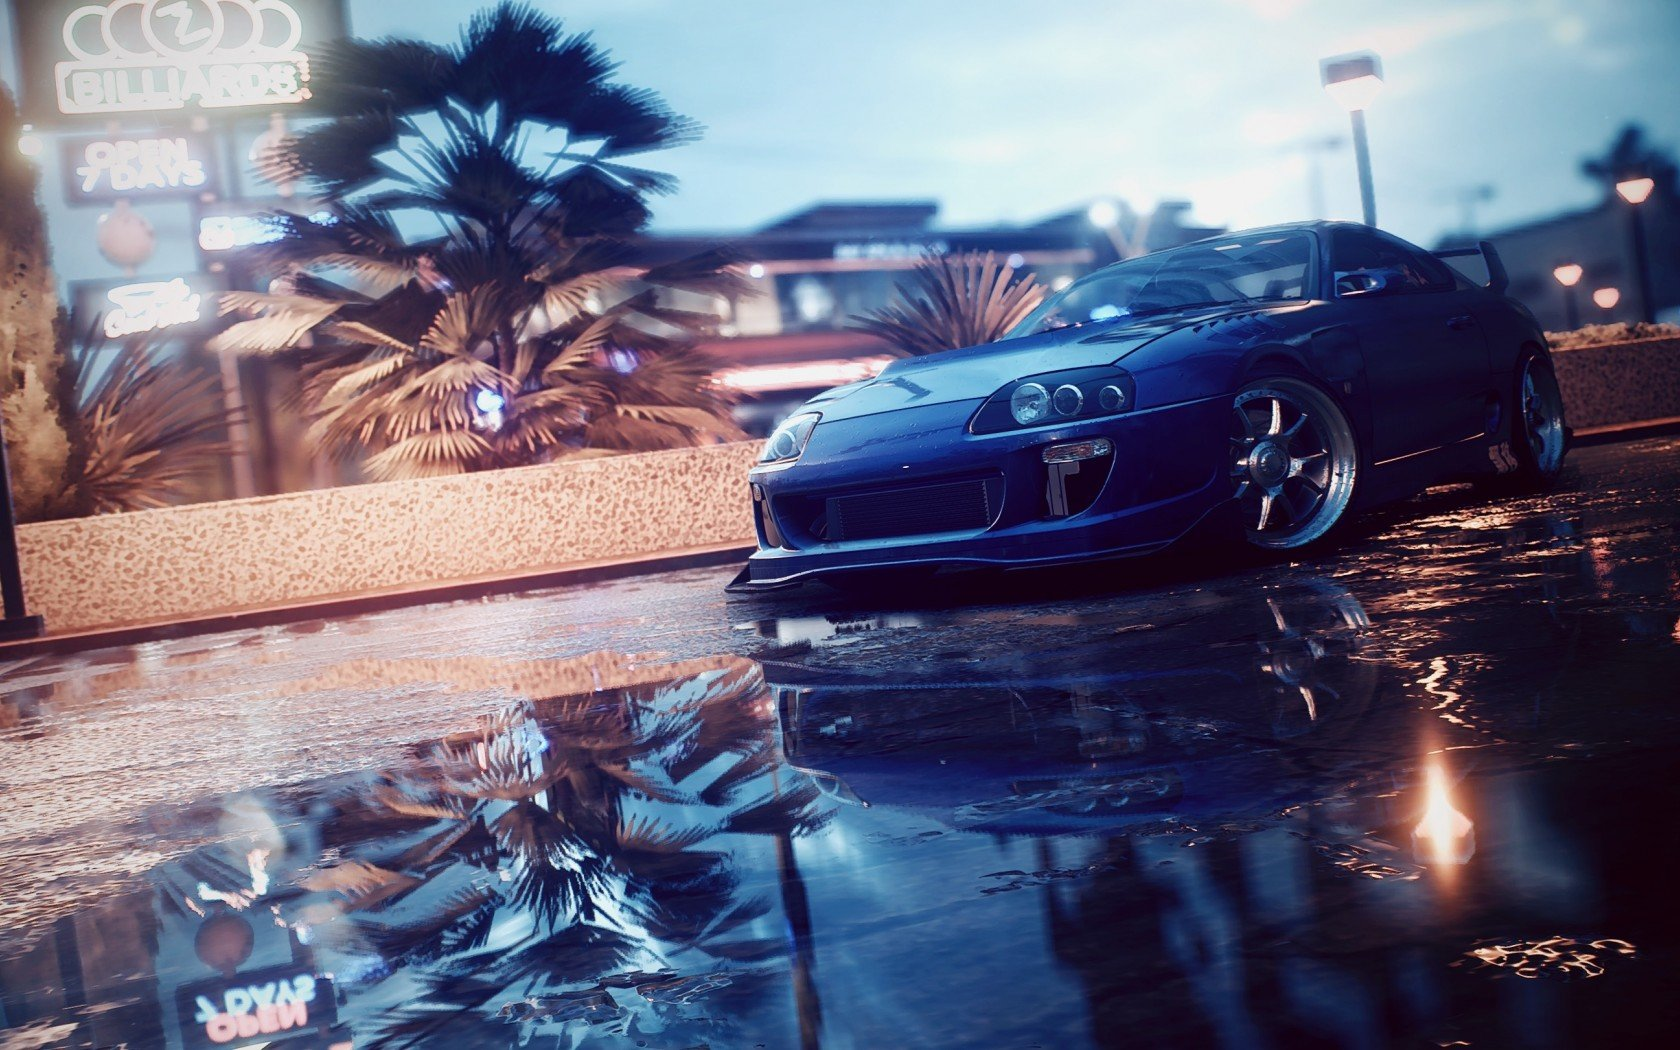 Need For Speed NFS wallpapers 1680x1050 desktop backgrounds 1680x1050